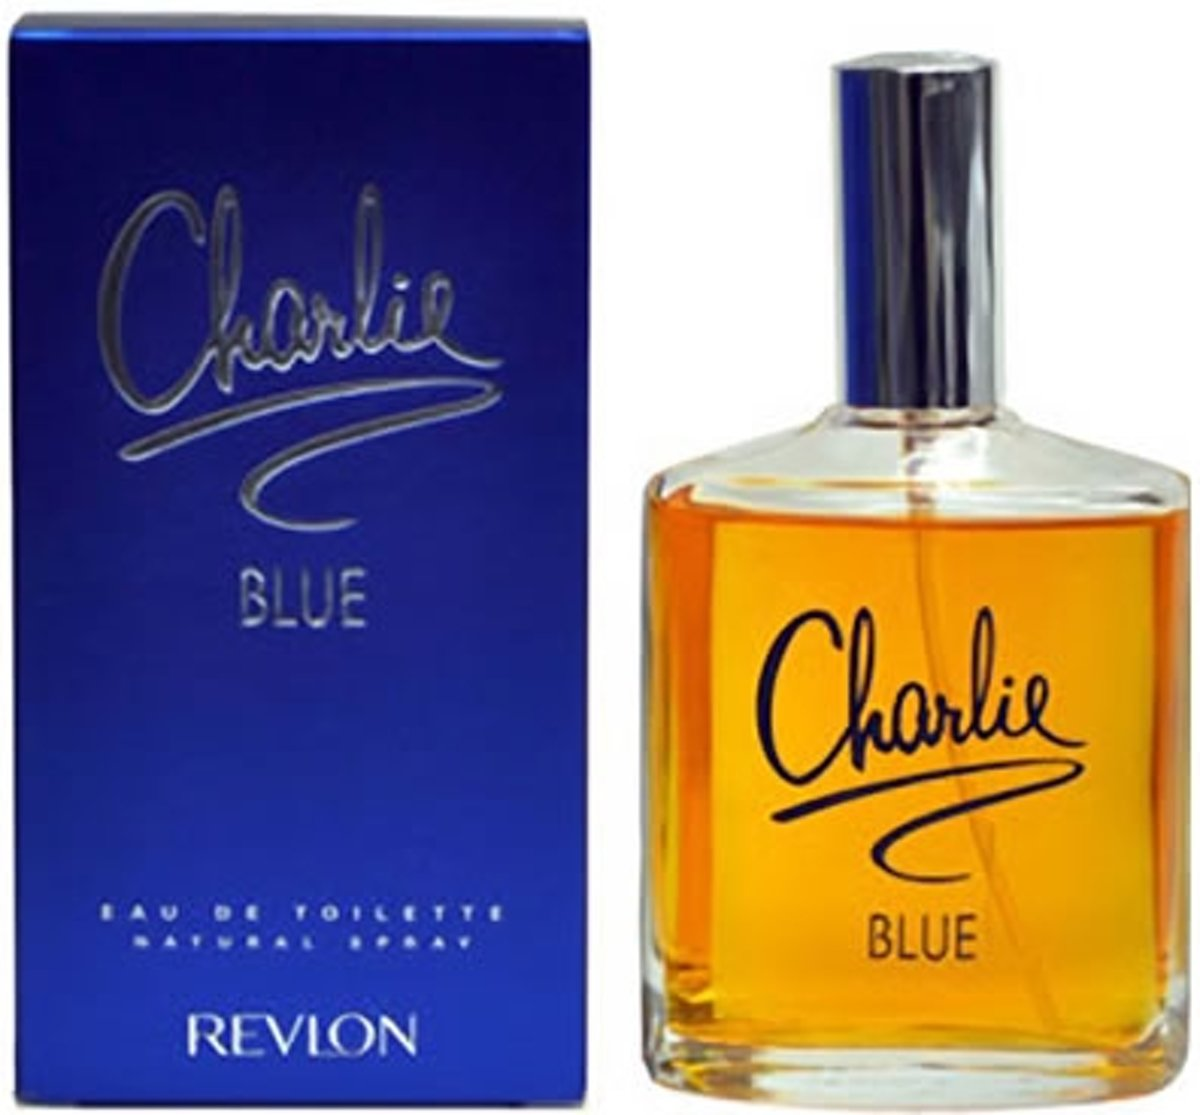 MULTI BUNDEL 2 stuks Revlon Charlie Blue Eau De Toilette Spray 100ml